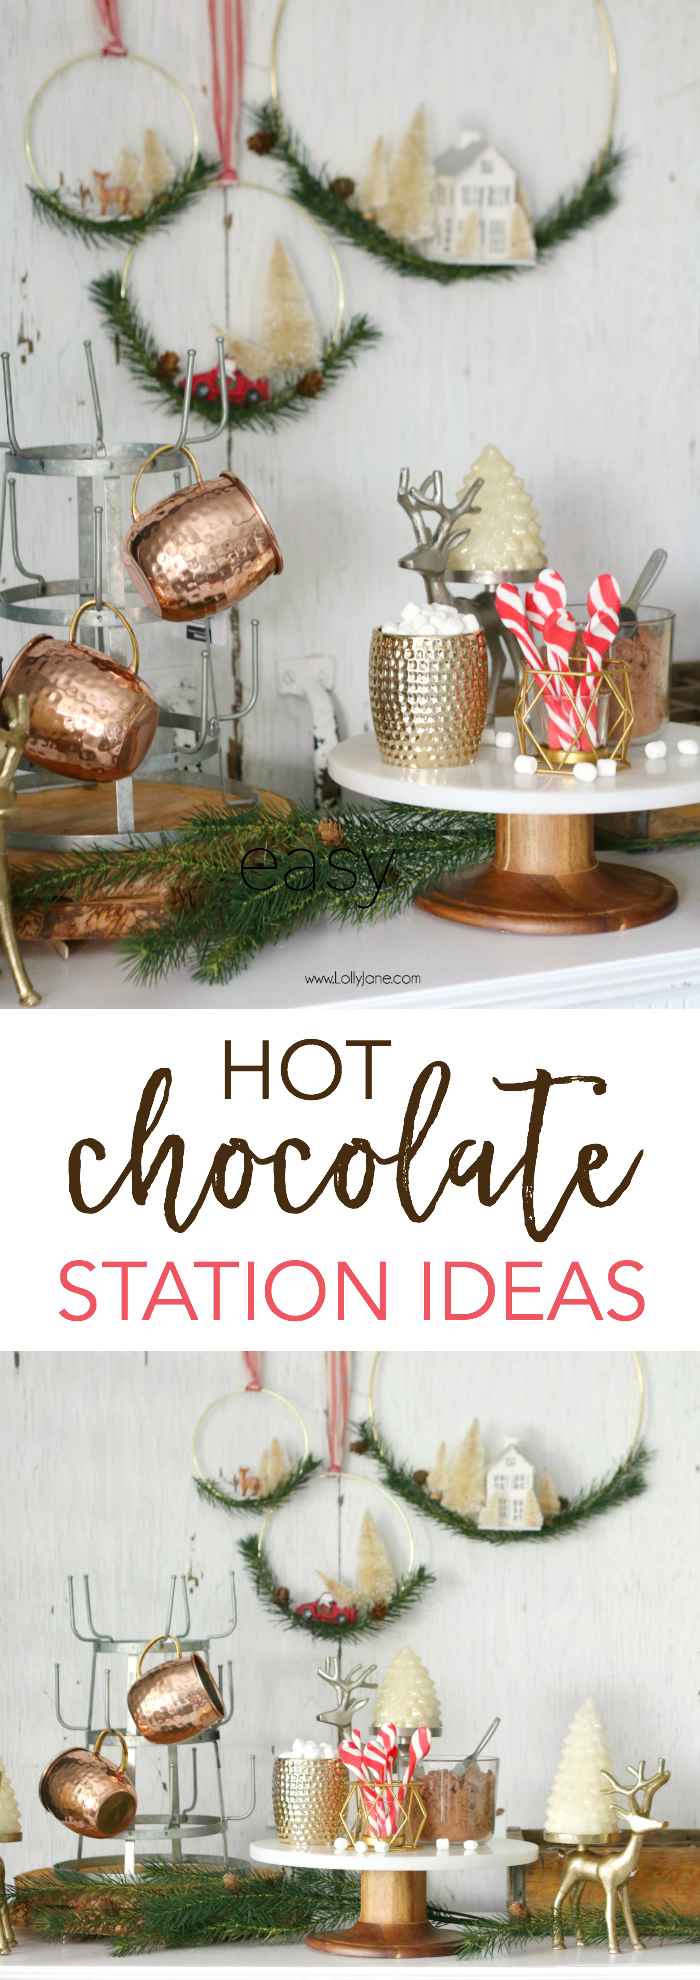 easy hot chocolate station ideas - Love this easy rustic glam hot chocolate display to leave up all season long! YUM!